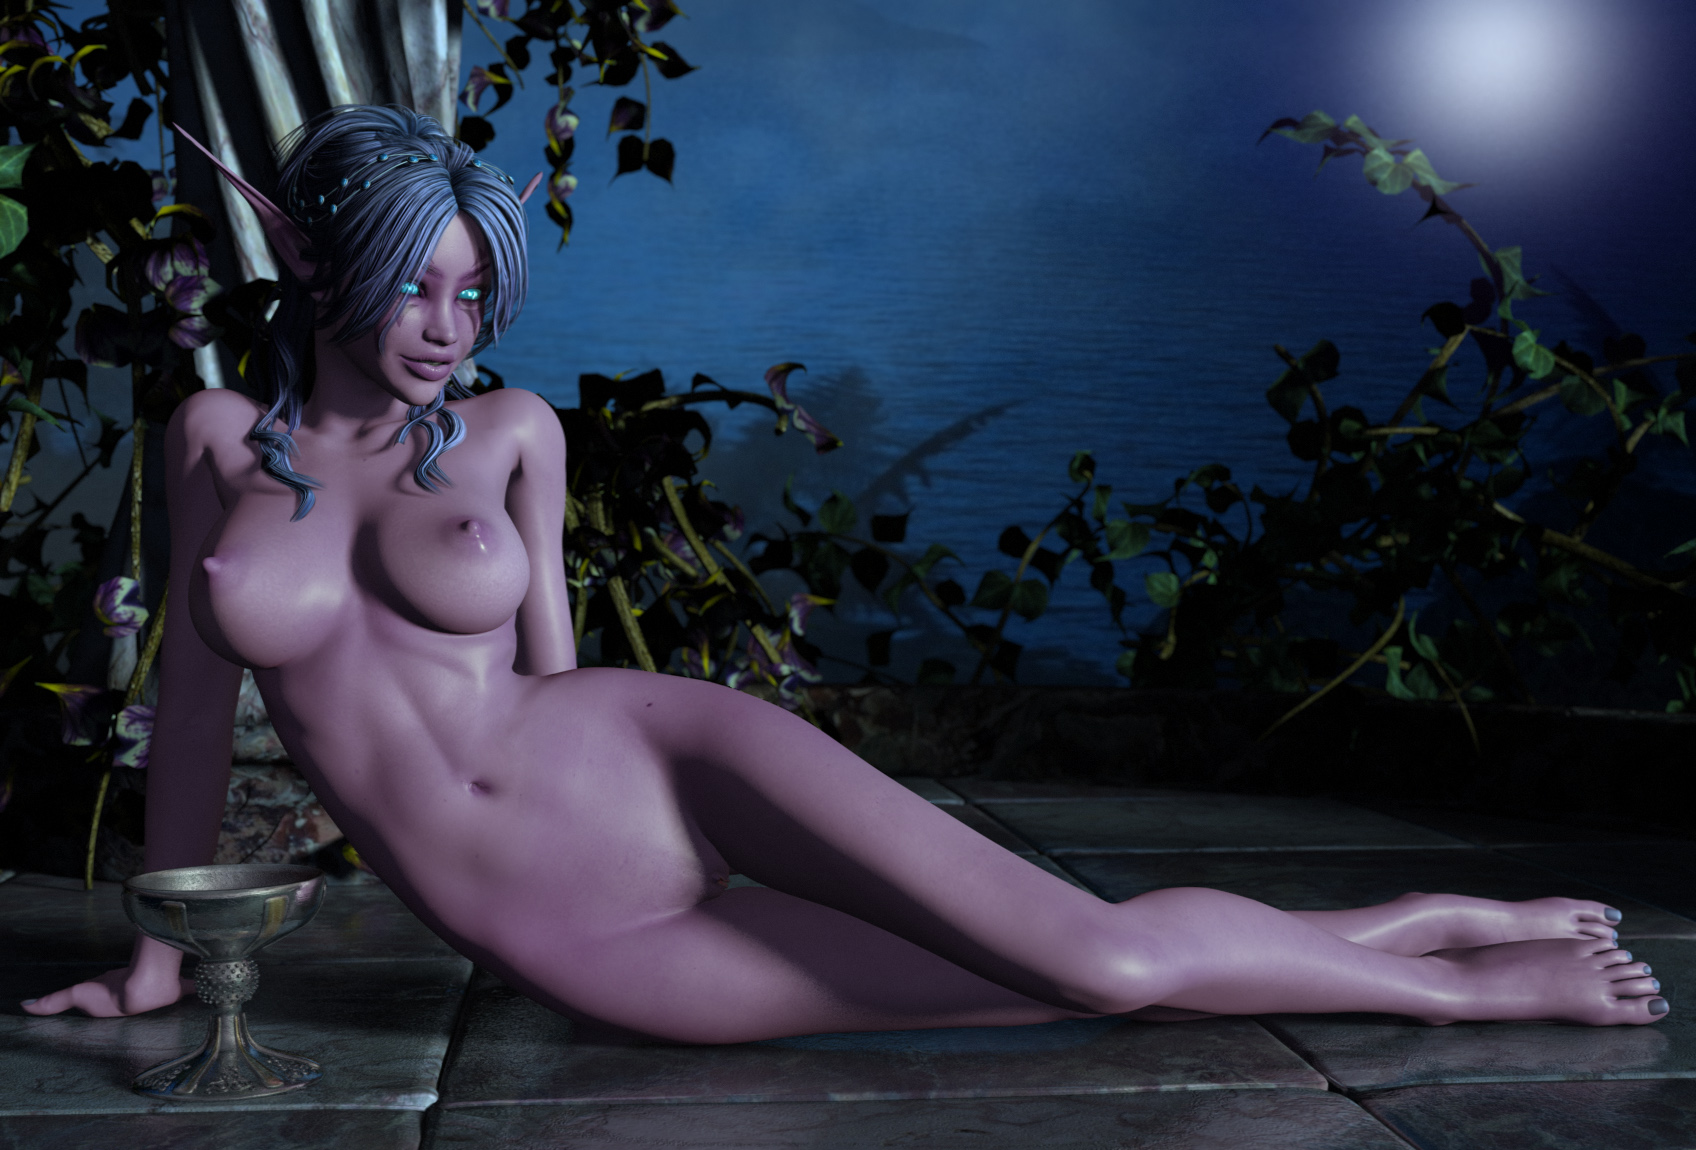 Nightelf pinup lesb nude porn films